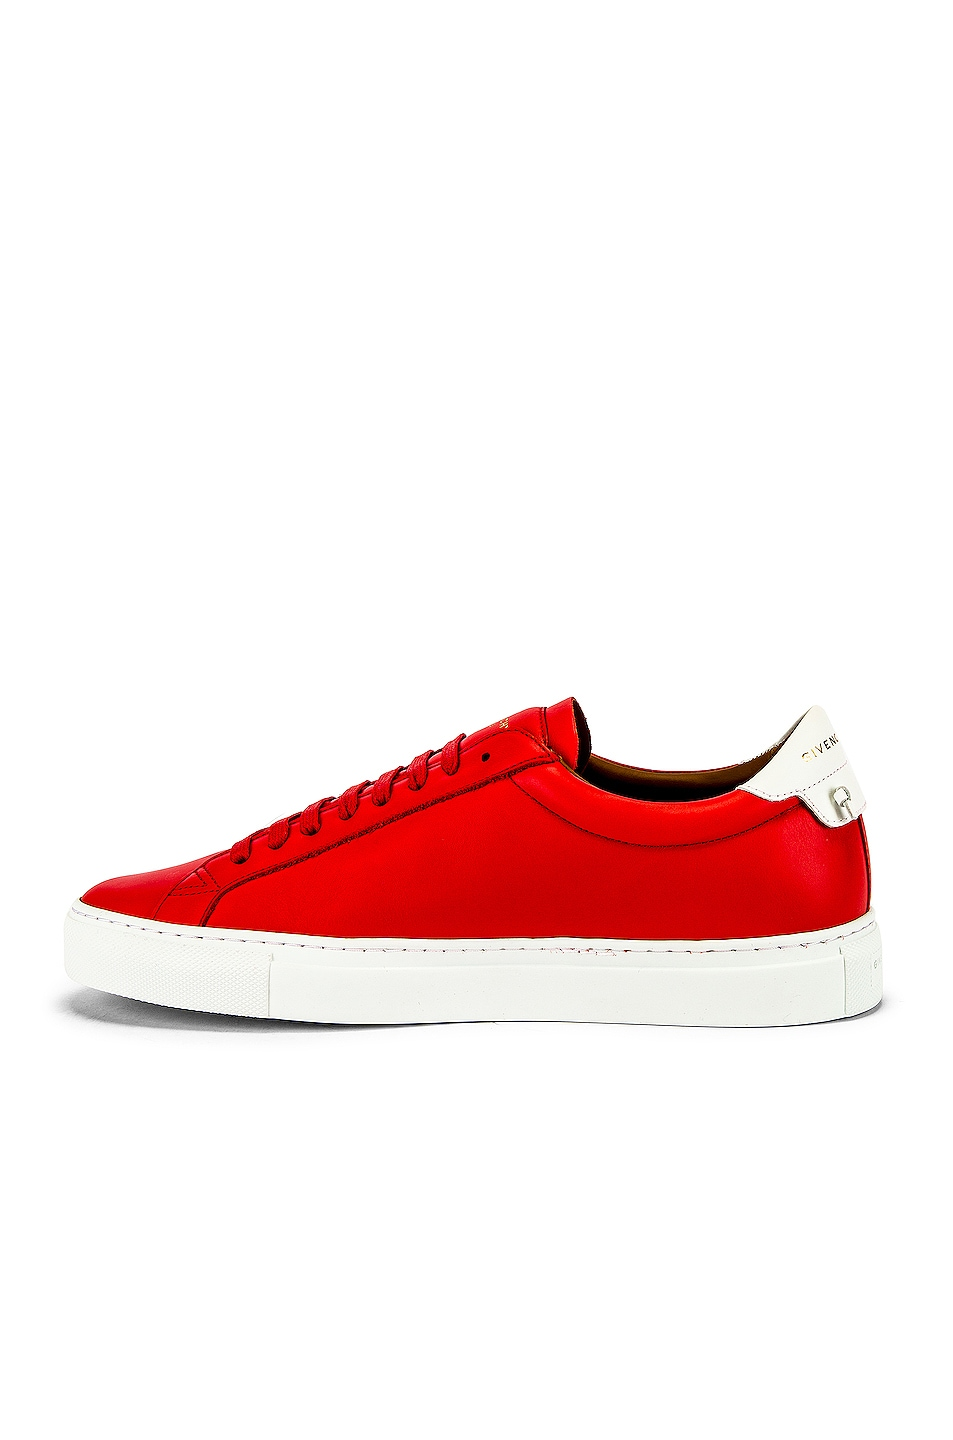 Image 5 of Givenchy Urban Street Low Sneakers in Red & White